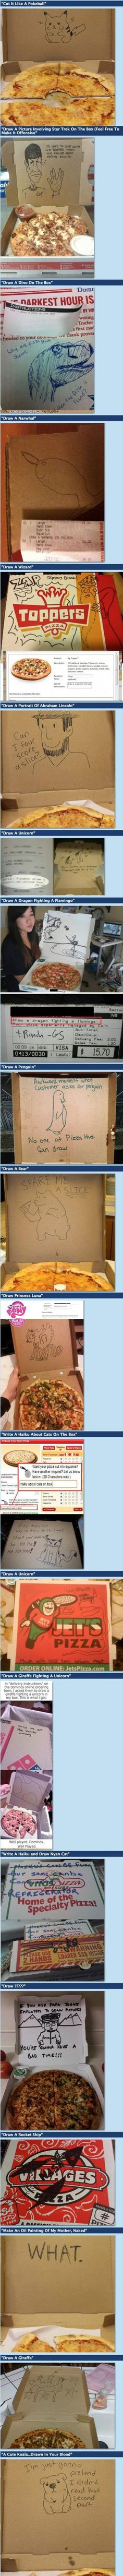 """Hilarious pizza delivery """"special instructions"""" requests 